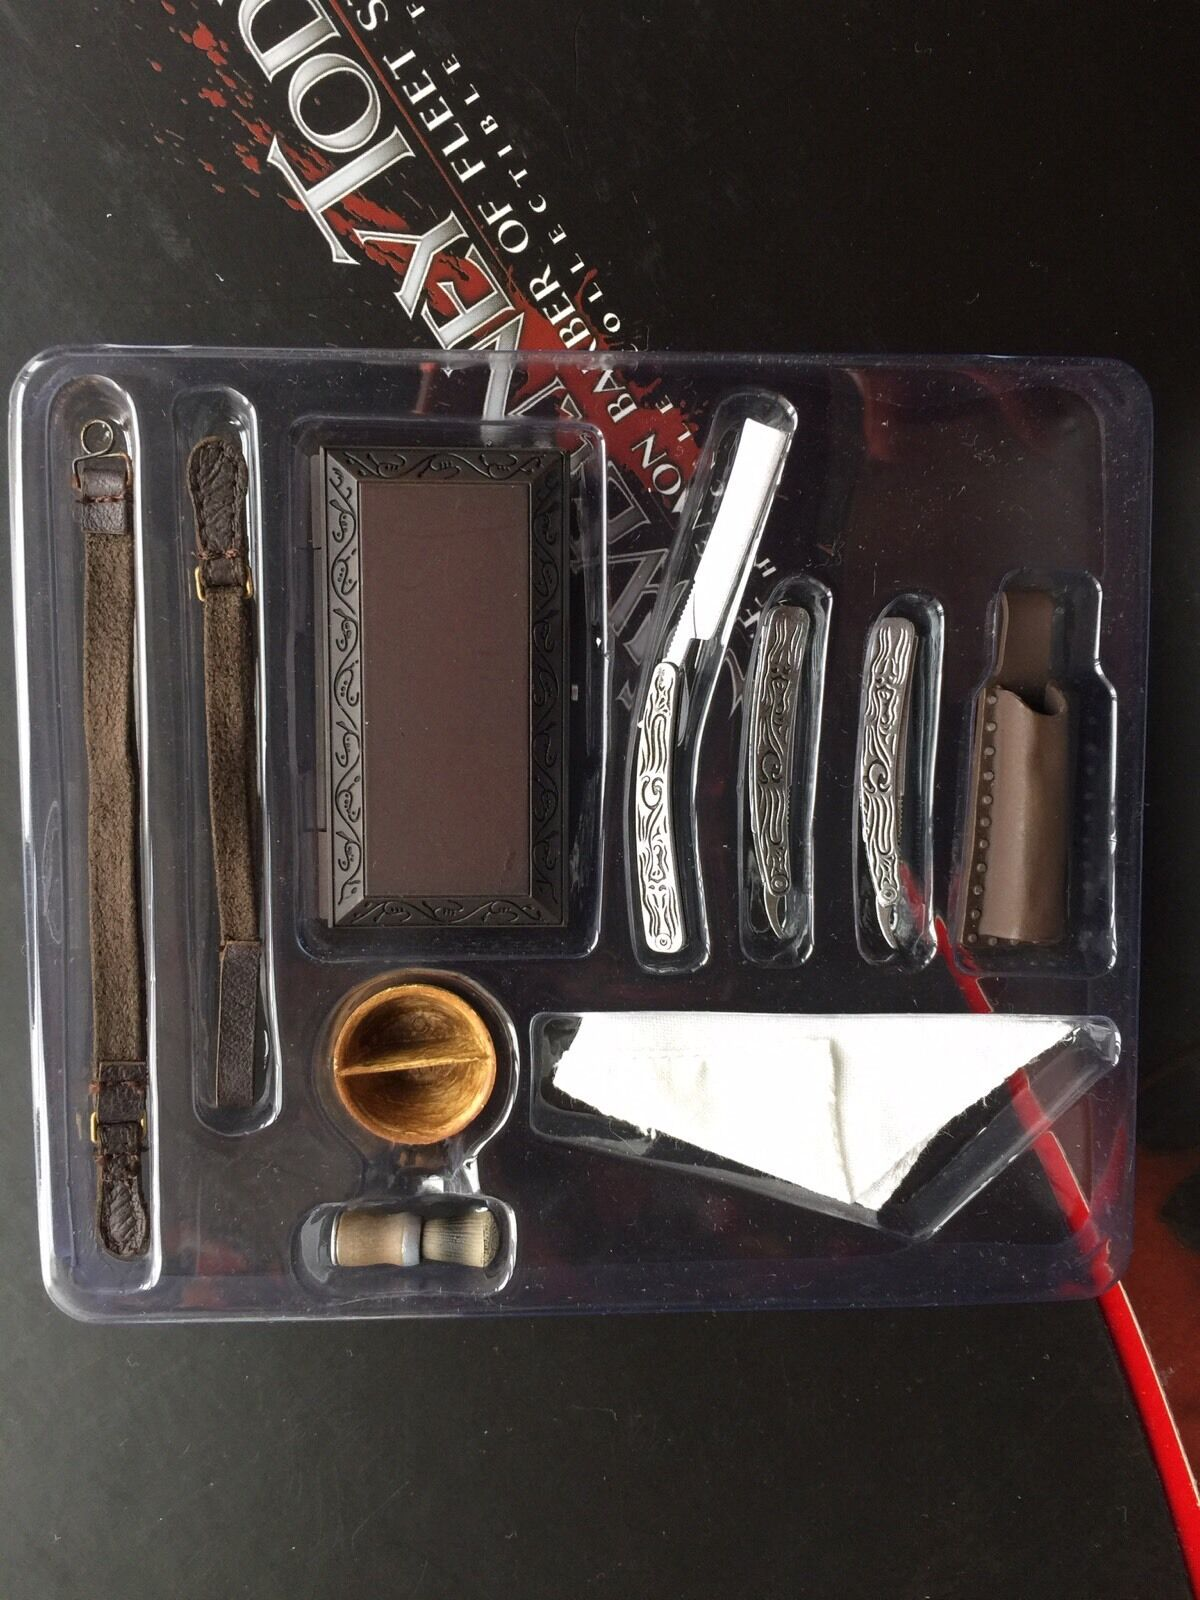 HOT TOYS 1 6 mms149 SWEENEY TODD SWITCHBLADE Accessories